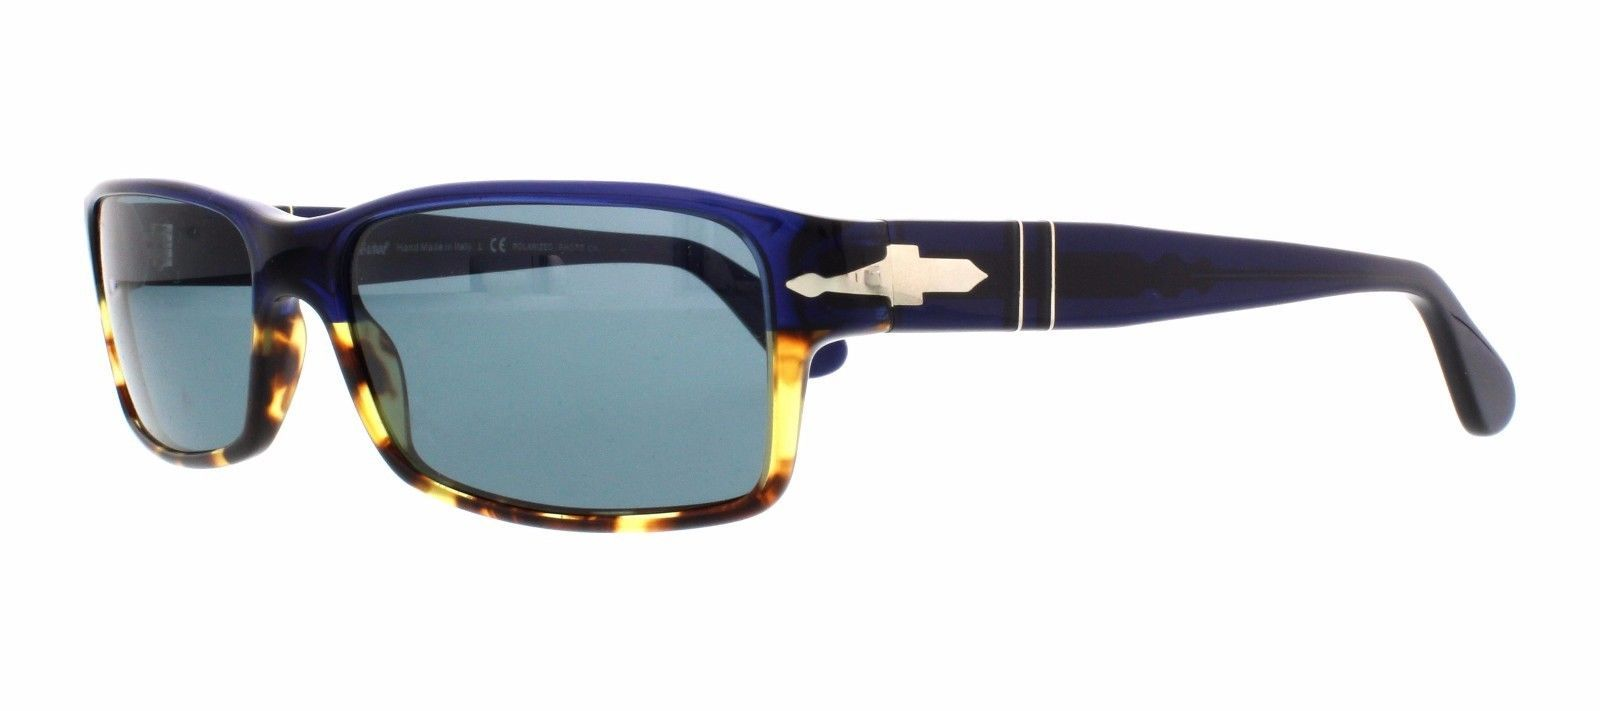 60d9a0b096 Persol Replacement Lenses PO 2747s Photo Polarized Blue 57mm